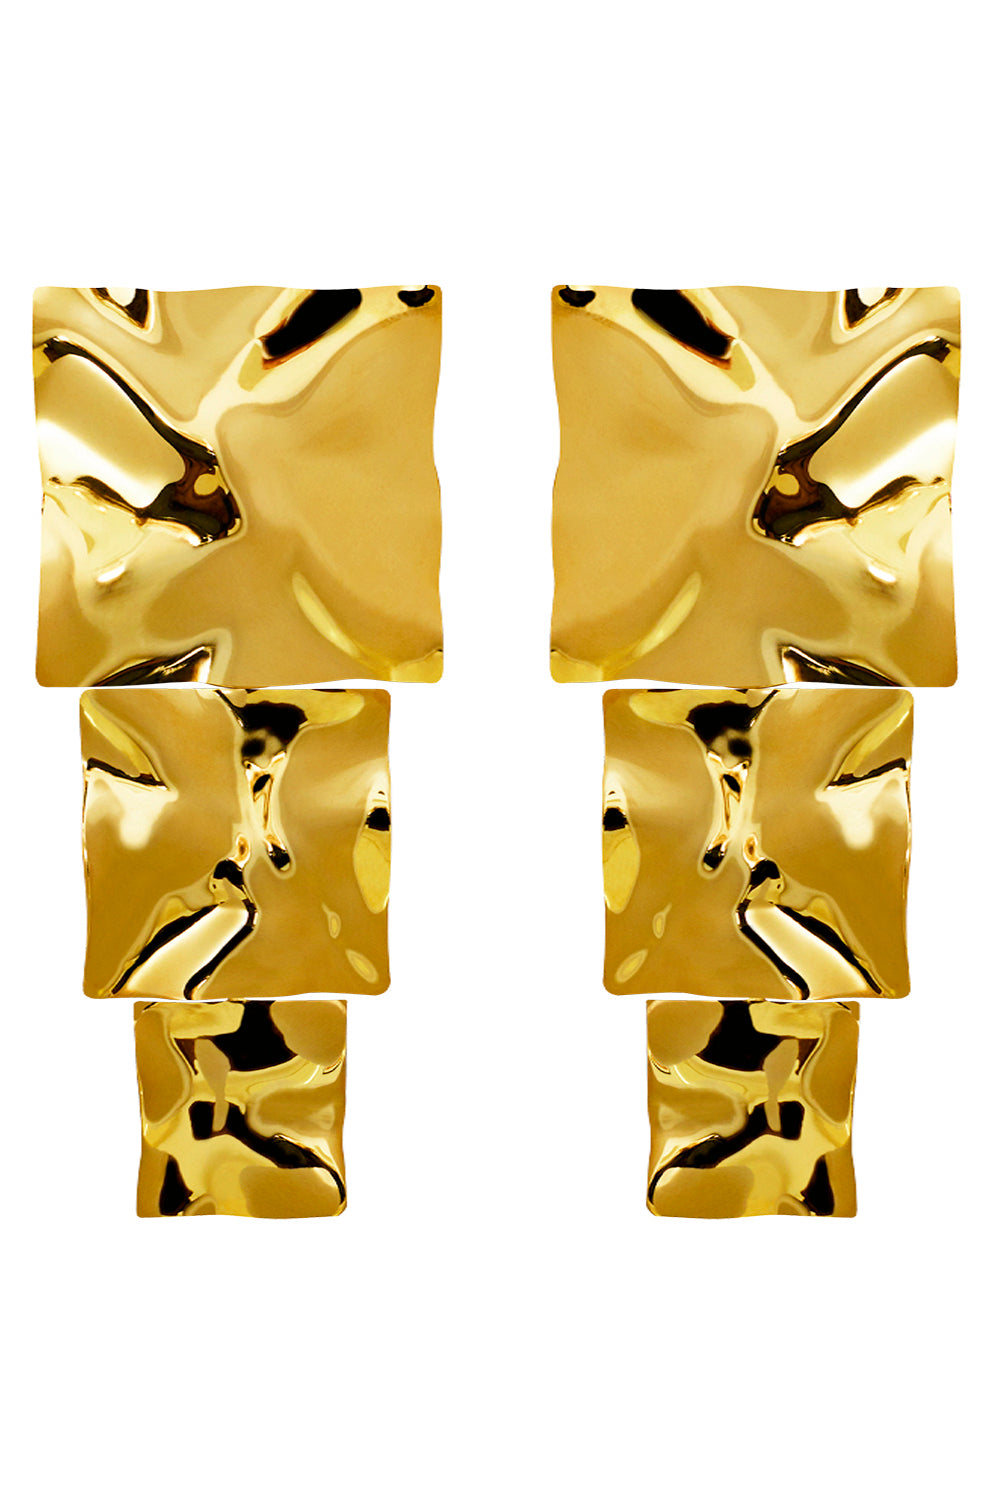 Cao Block Earrings in Gold